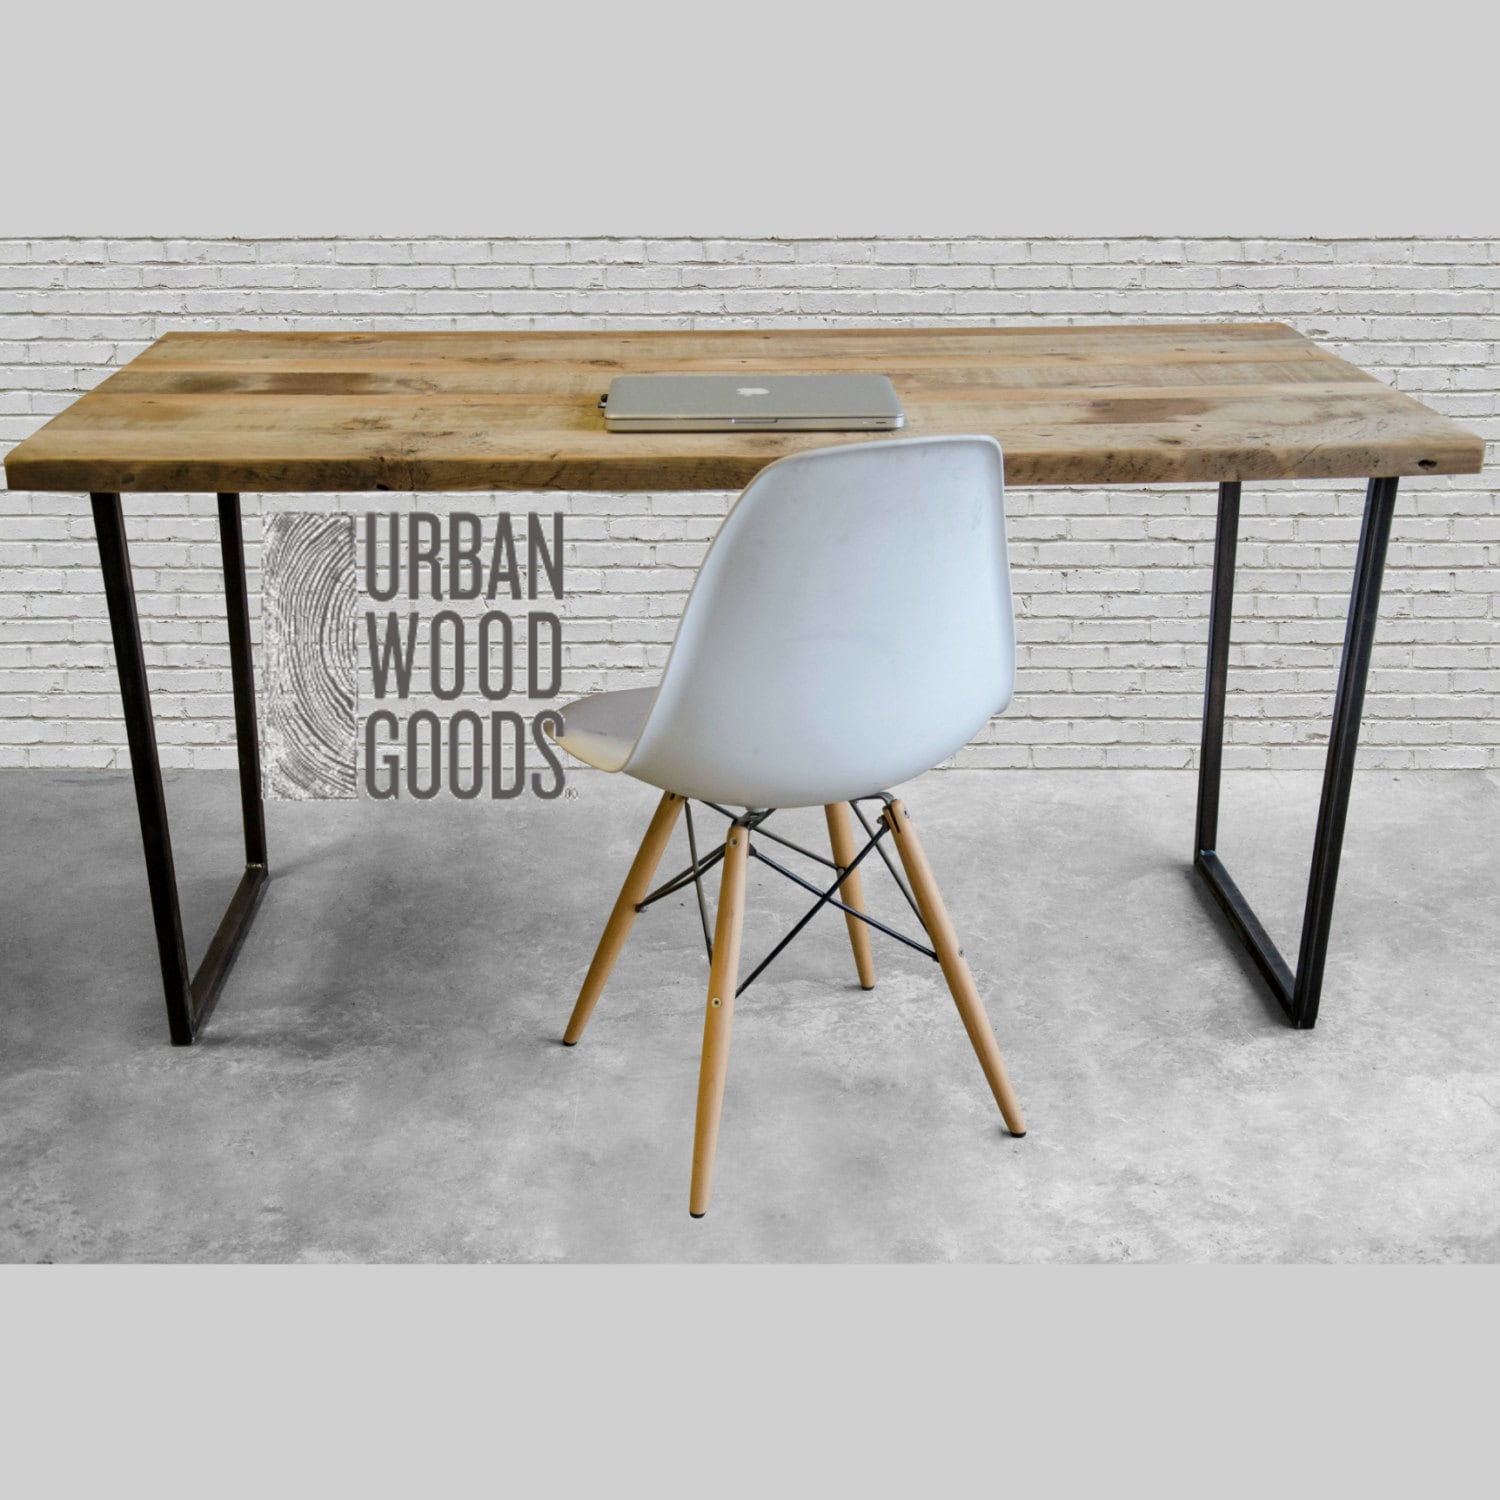 Incroyable Modern Urban Wood Desk, Reclaimed Wood Office Desk With Vintage Wood Top.  Choose Size, Wood Thickness And Finish.